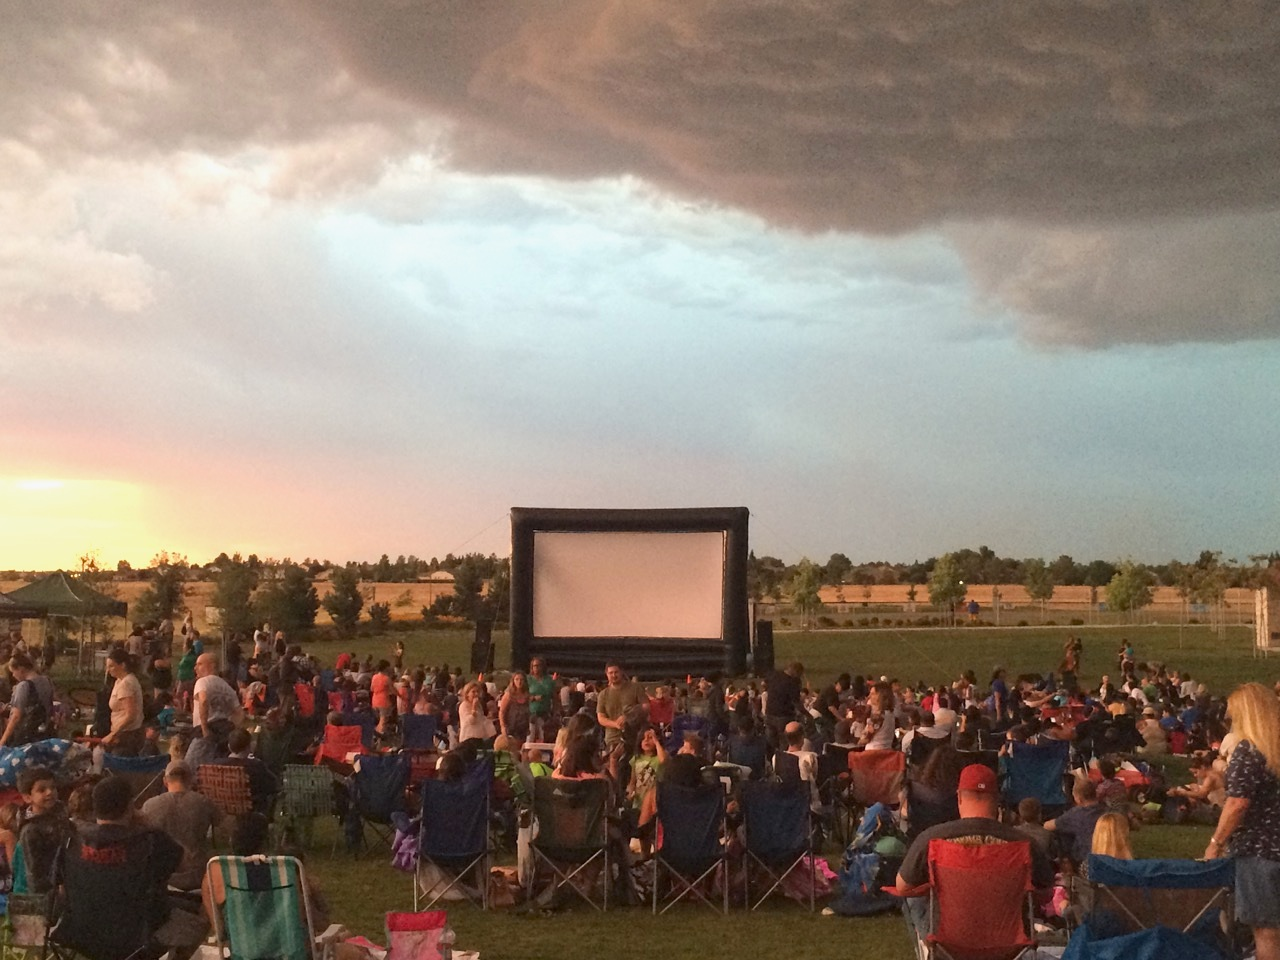 Navy Federal Credit Union: Movie Night Under the Stars